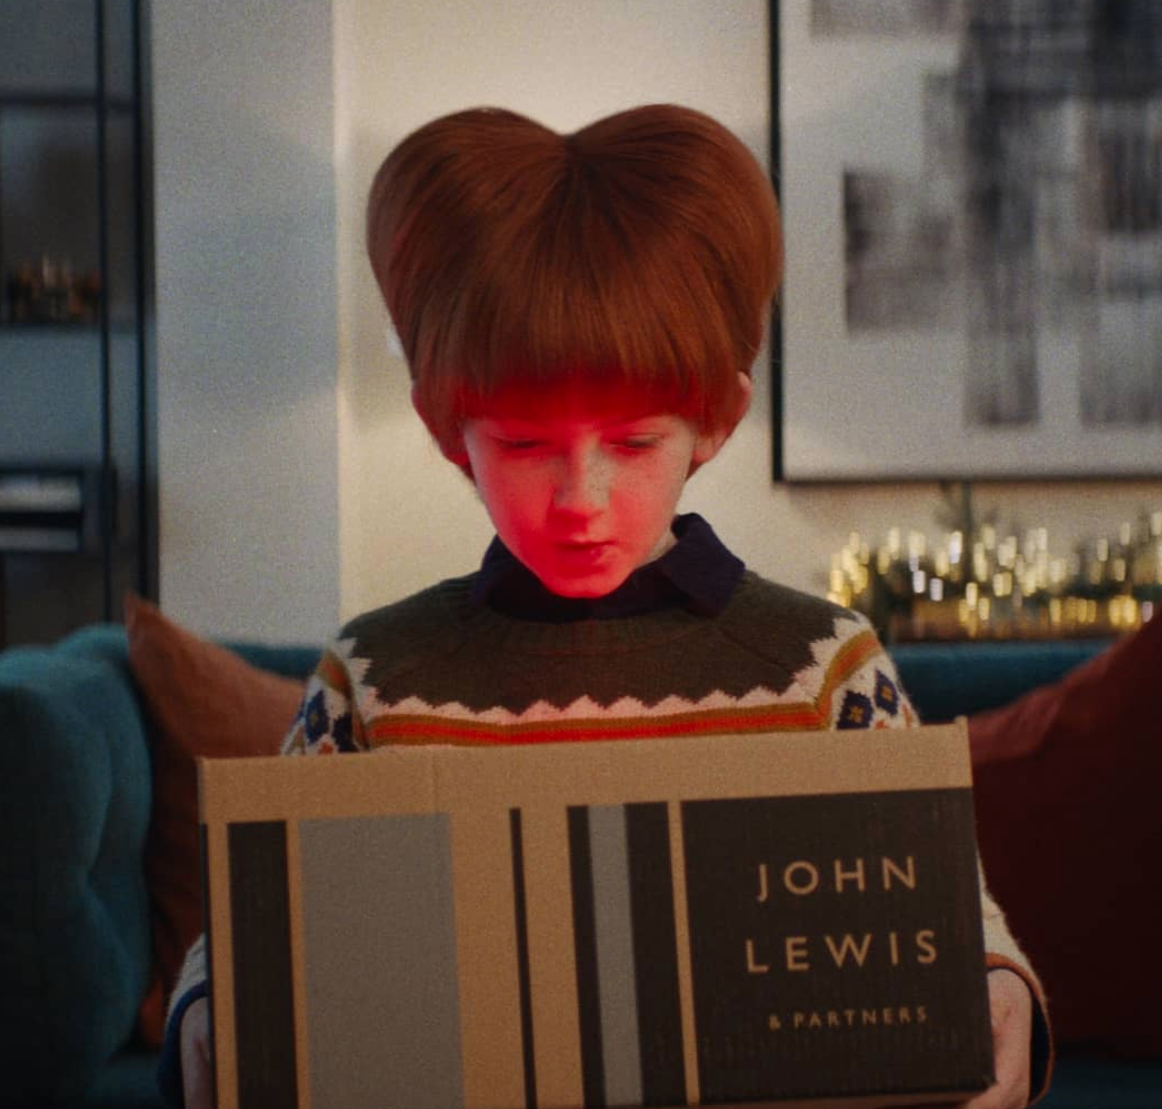 Above: John Lewis' Give a Little Love theme for this Christmas has chimed with the psyche of the nation.